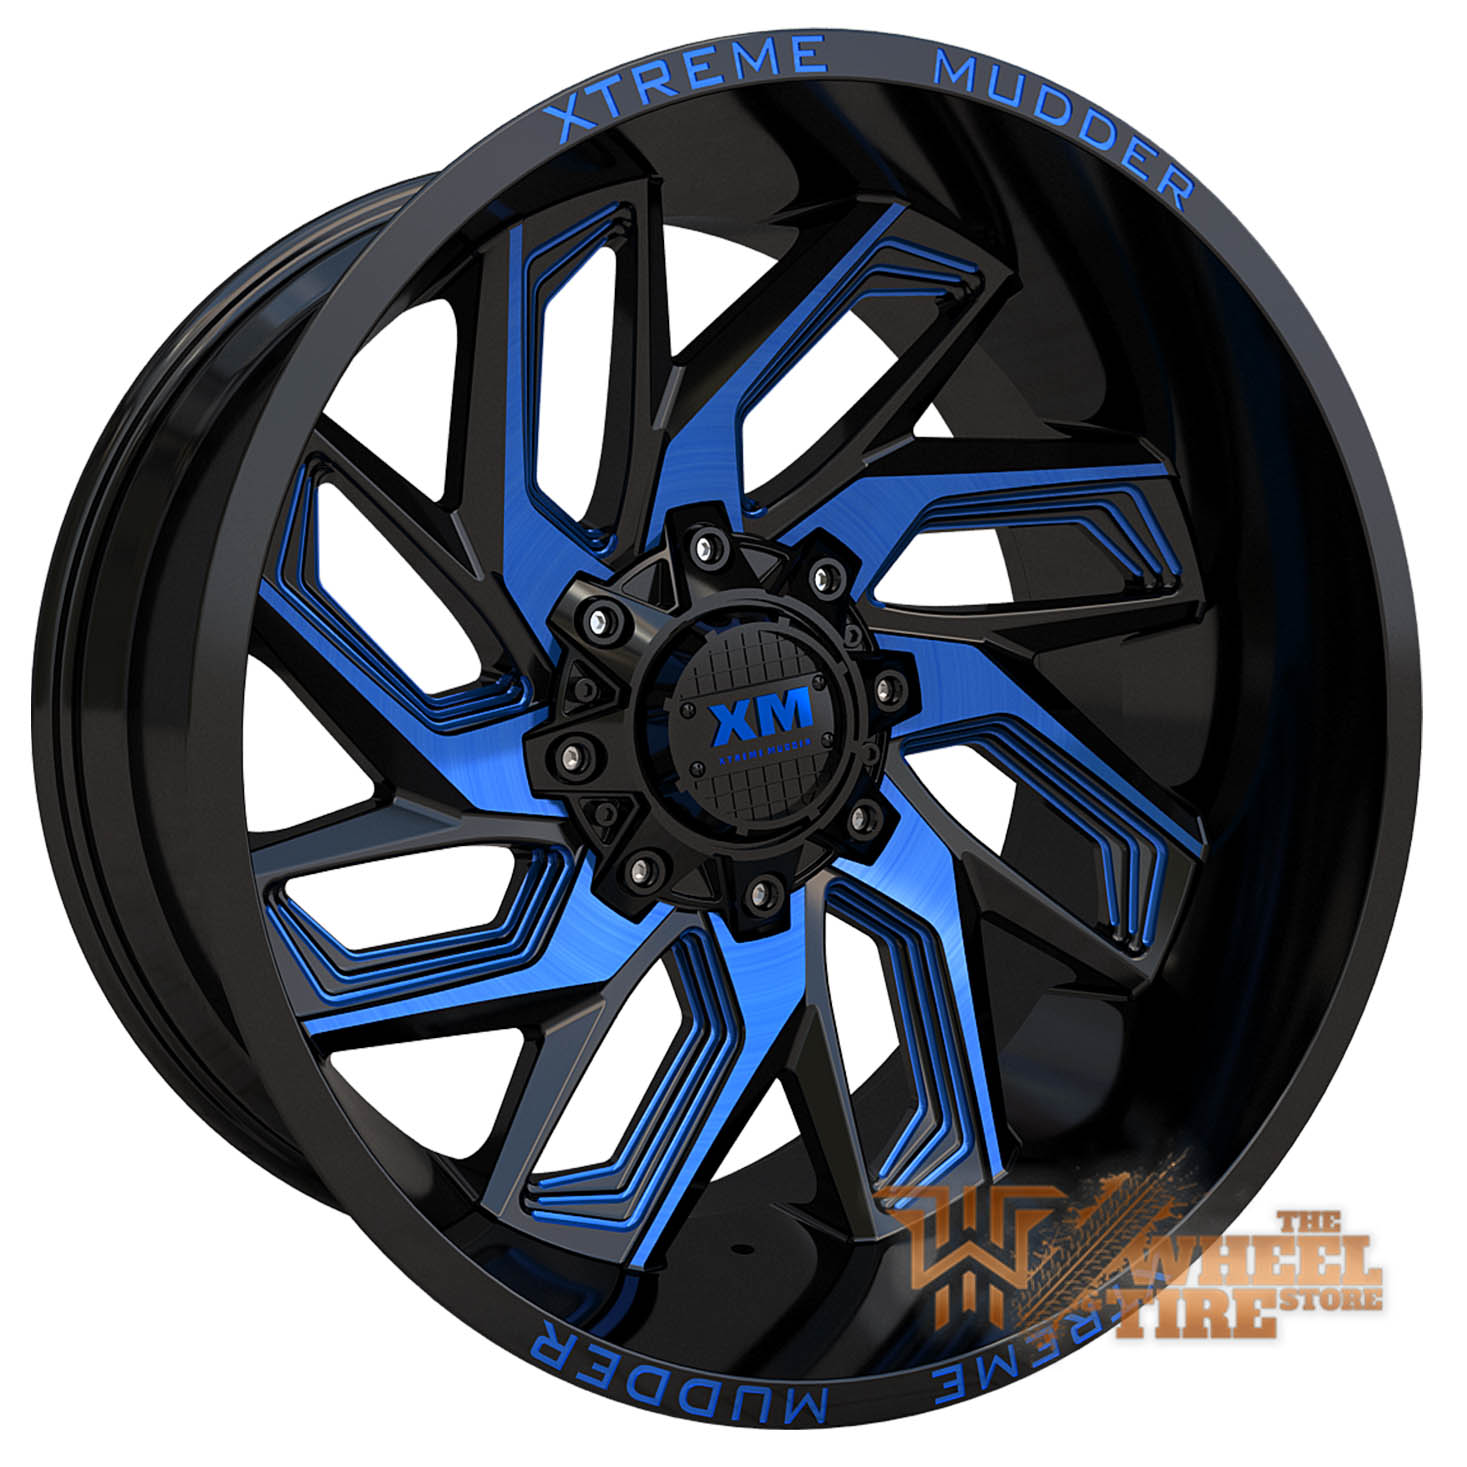 XTREME MUDDER XM-343 Wheel in Gloss Black Blue Milled (Set of 4)